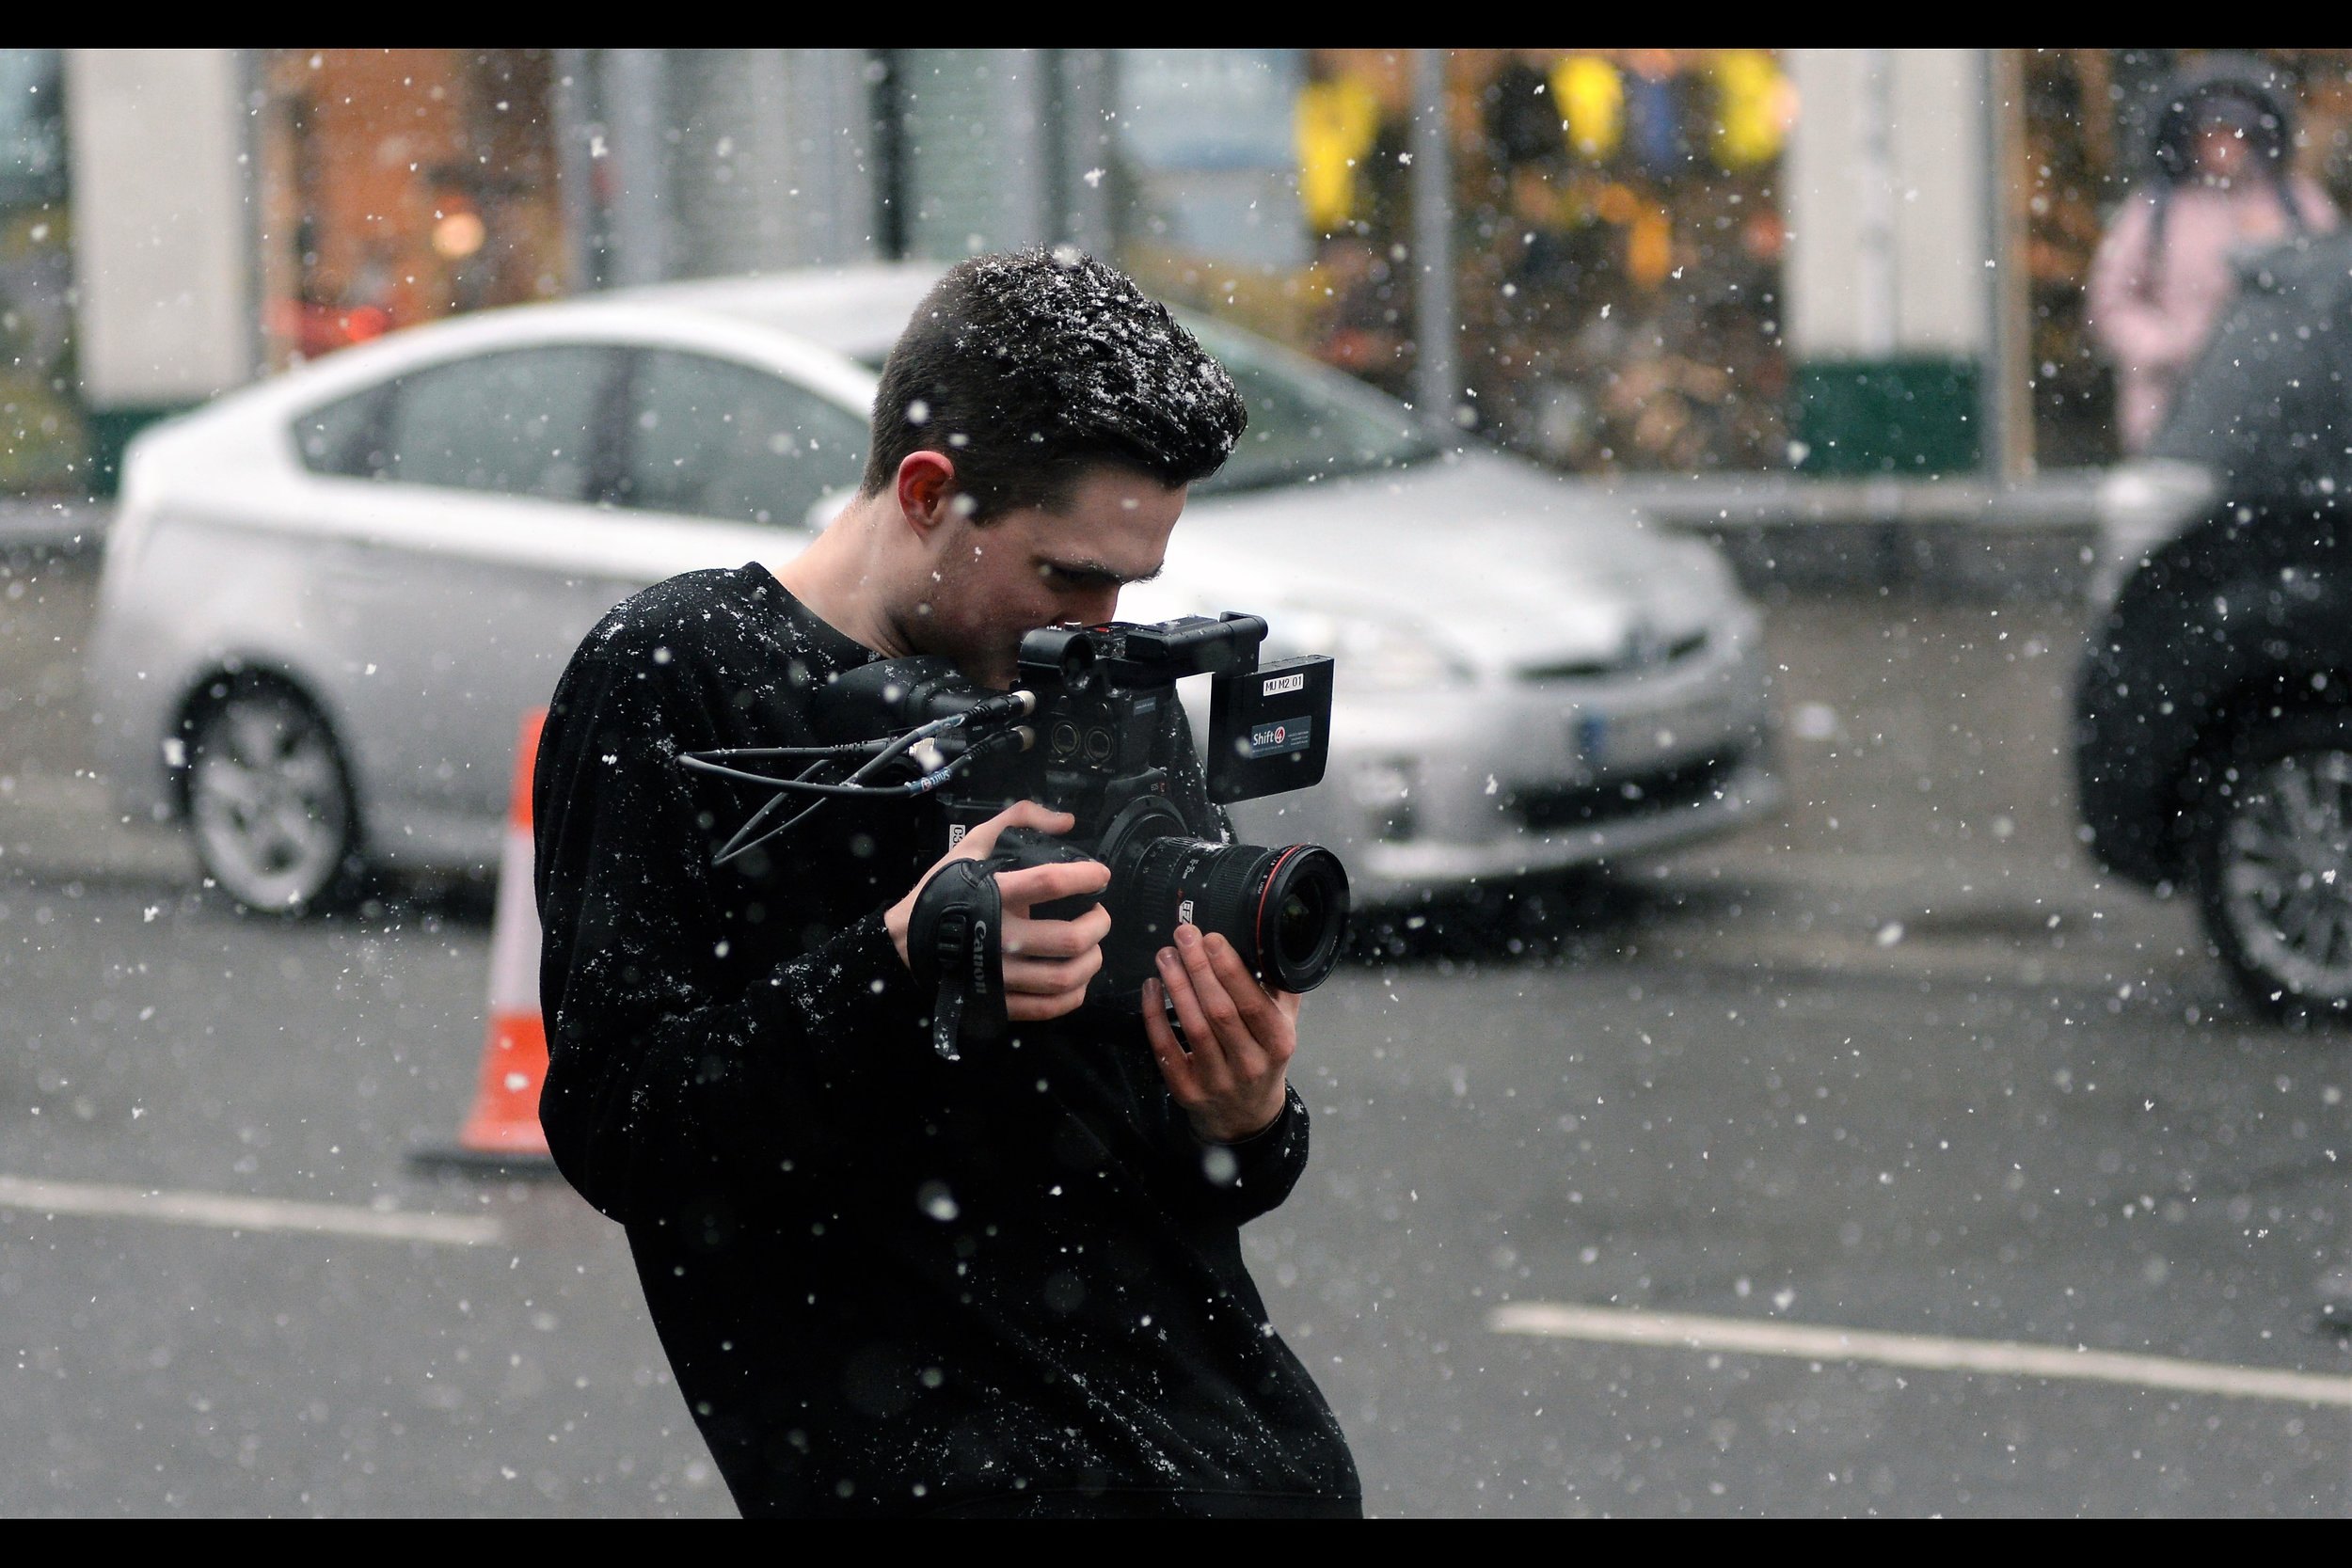 """""""I can't feel the cold, Ruth, because I'm in the zone. I'm so attuned to what I'm doing that near-zero temperatures can not distract me from my life's true calling. That said... what's all that white stuff in front of the camera? it's ruining my pictures...."""""""